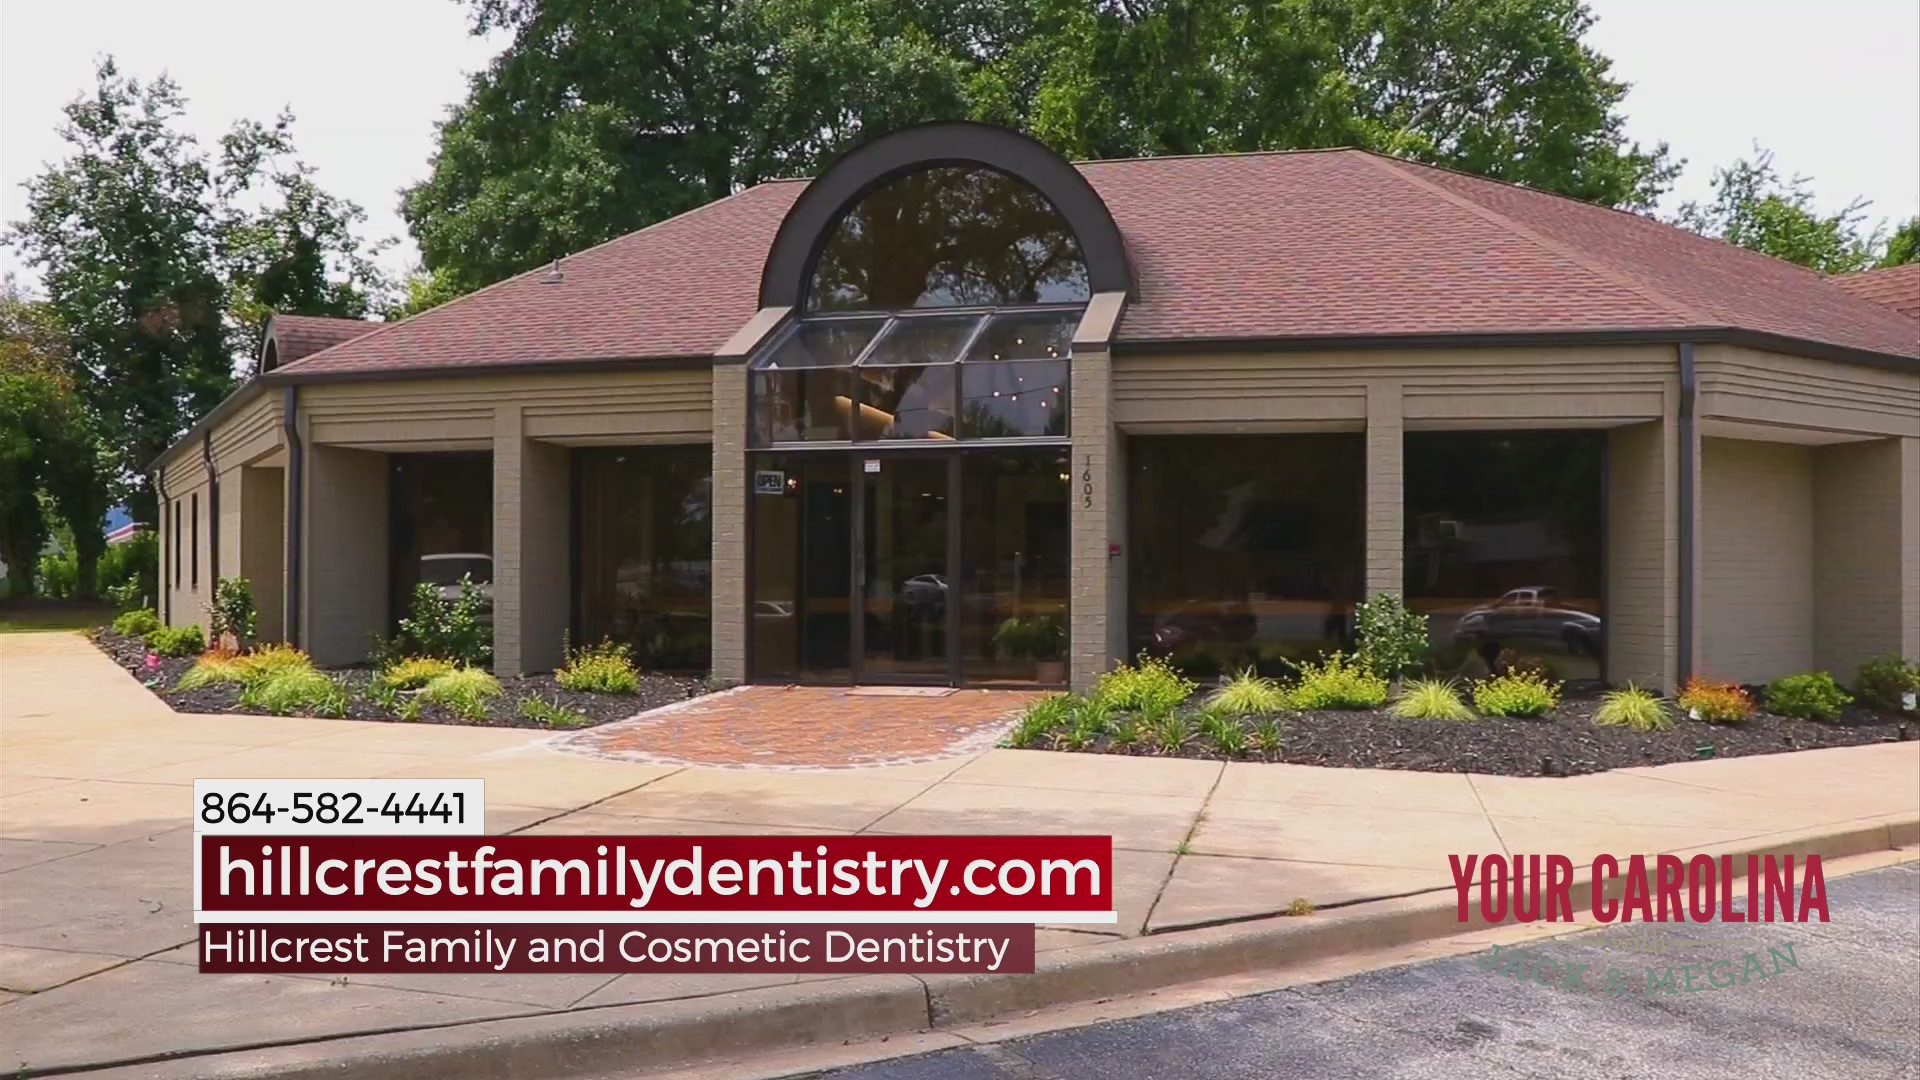 Hillcrest Family and Cosmetic Dentistry